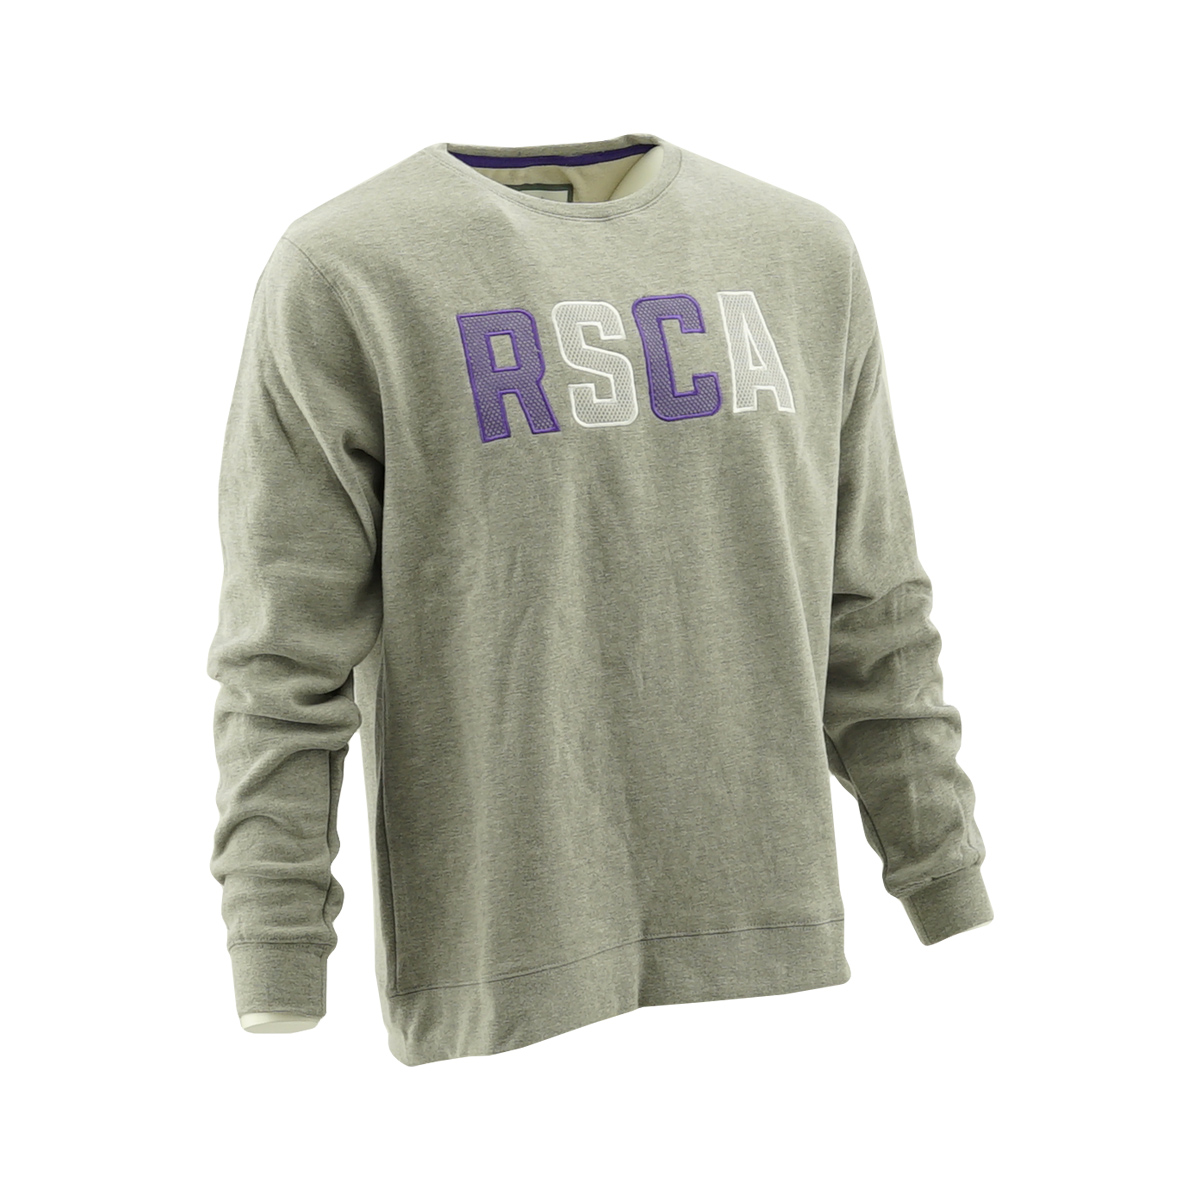 Sweater Heren RSCA Paars/Wit